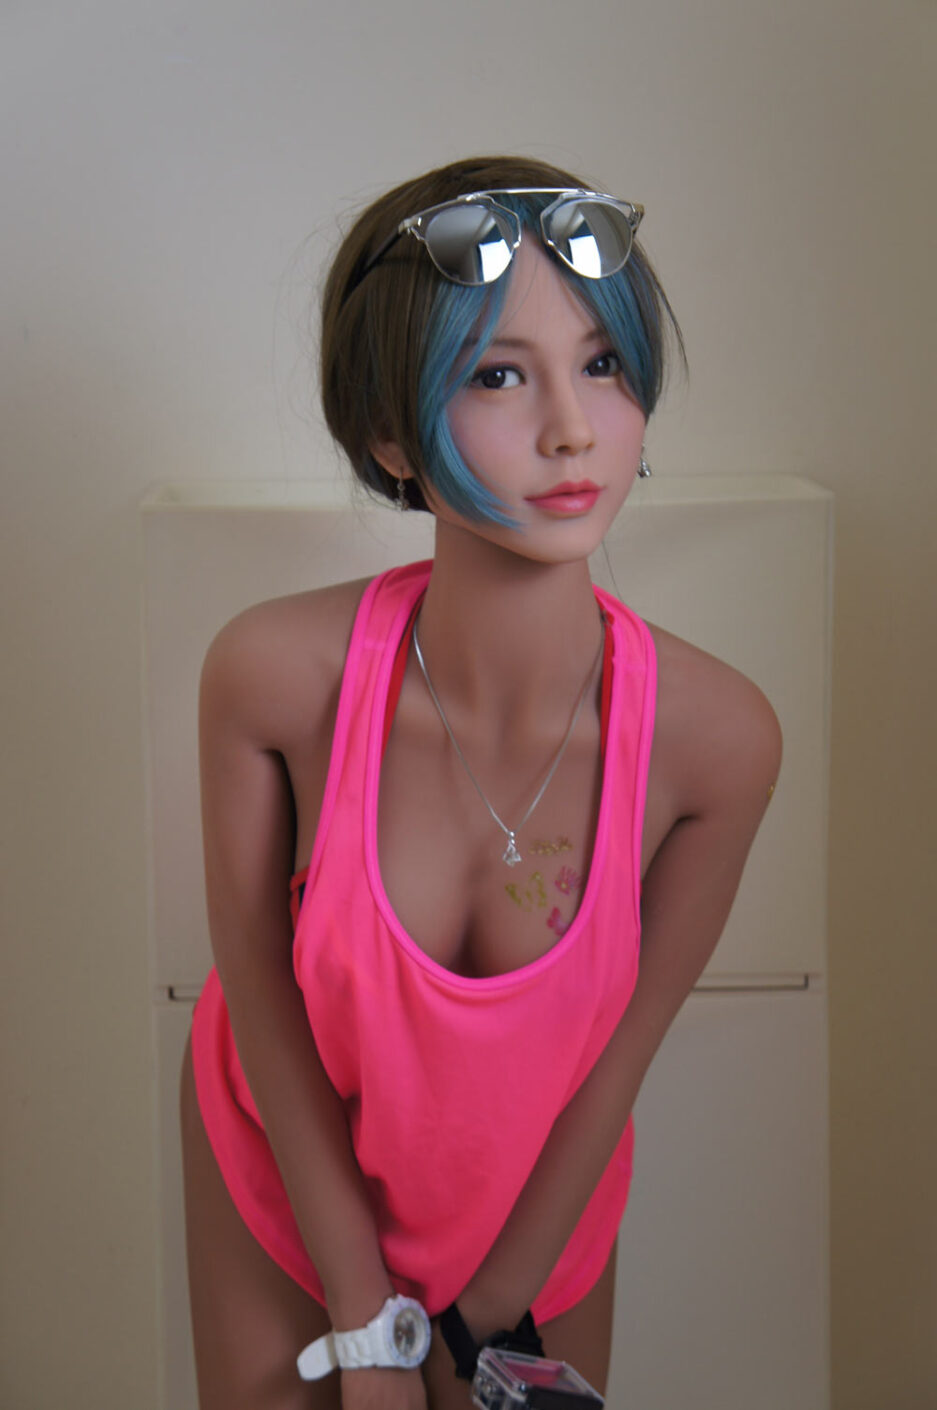 Sex doll with eyes on the head